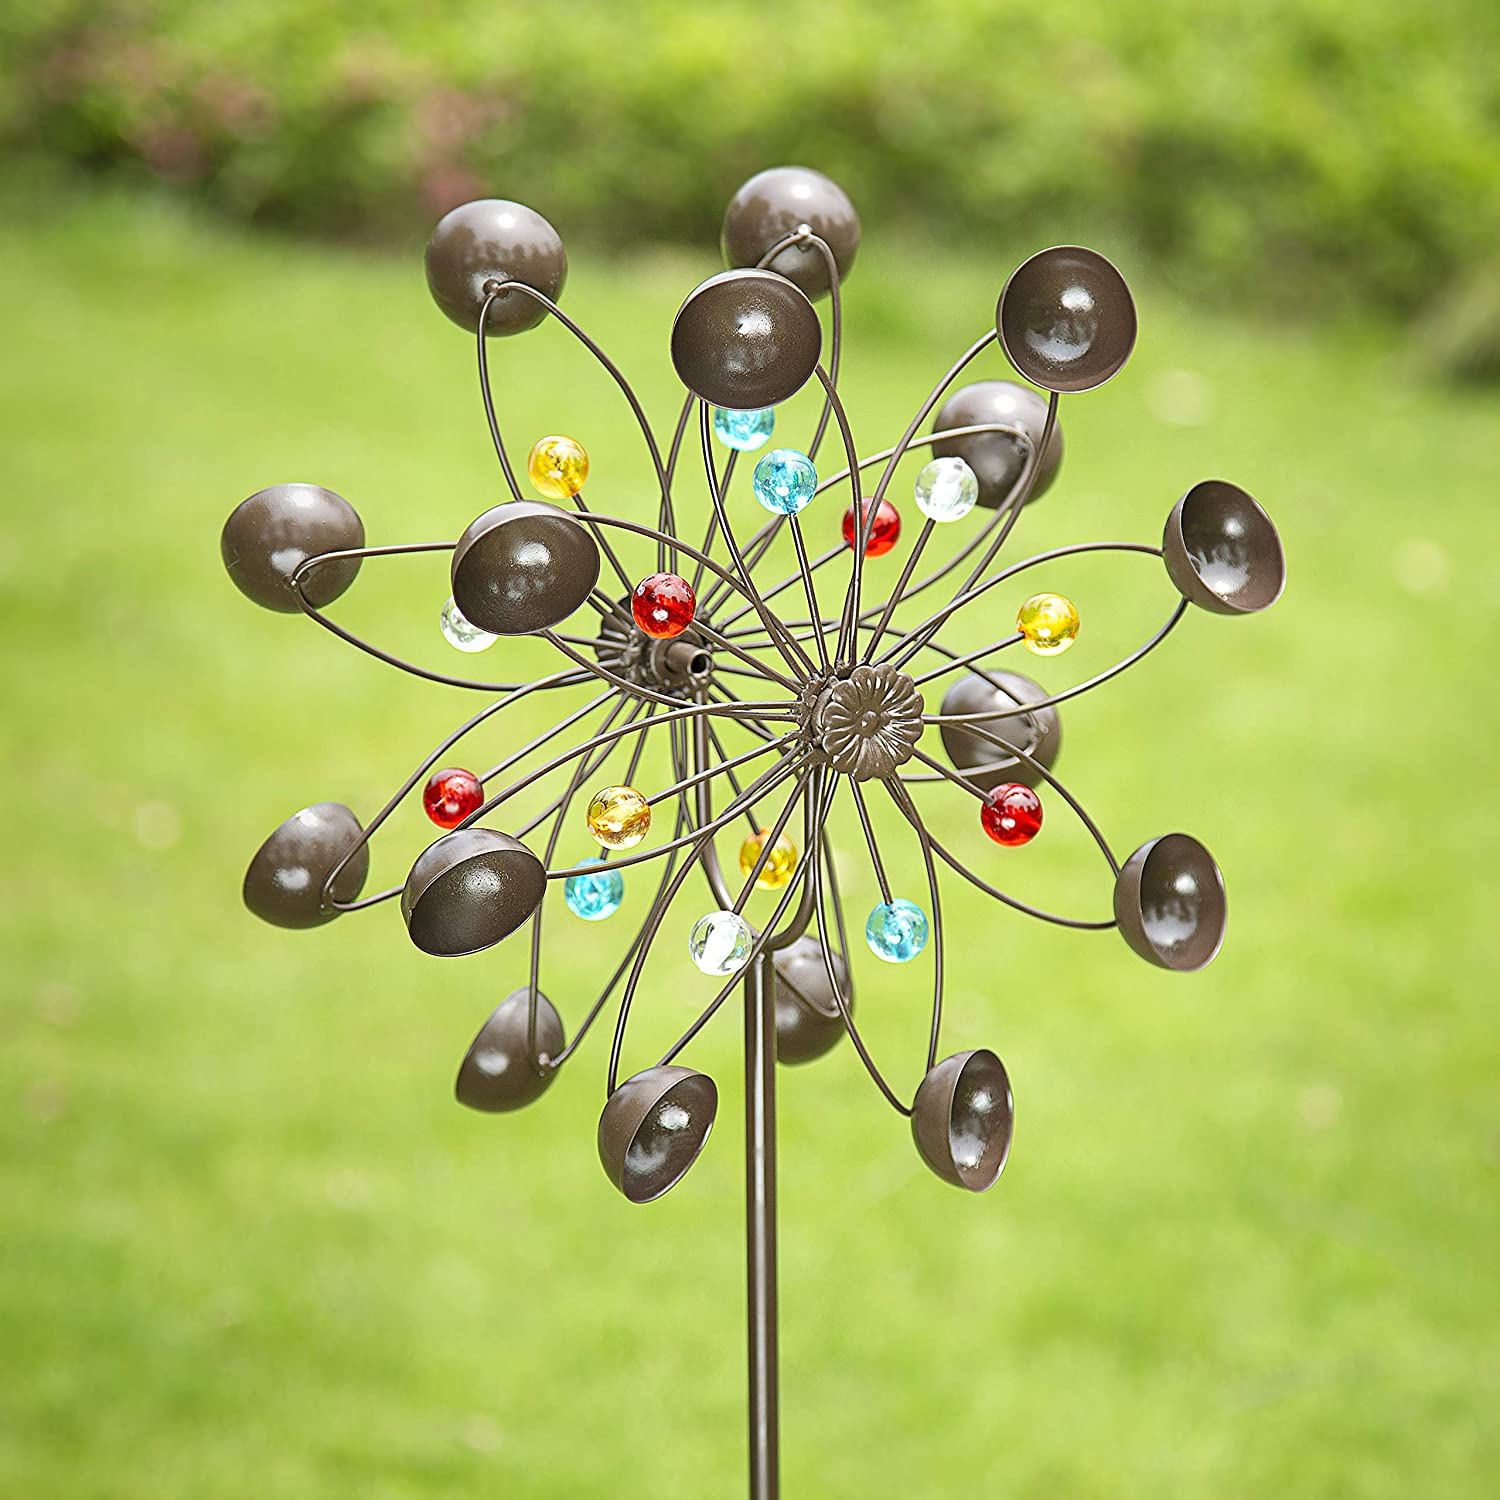 GIGALUMI Yard Wind Spinner, Copper Metal Garden Spinner Dual Rotors Wind Sculpture for Outdoor Décor, Gardening Gifts or Yard Art (Bronze) best gardening gifts